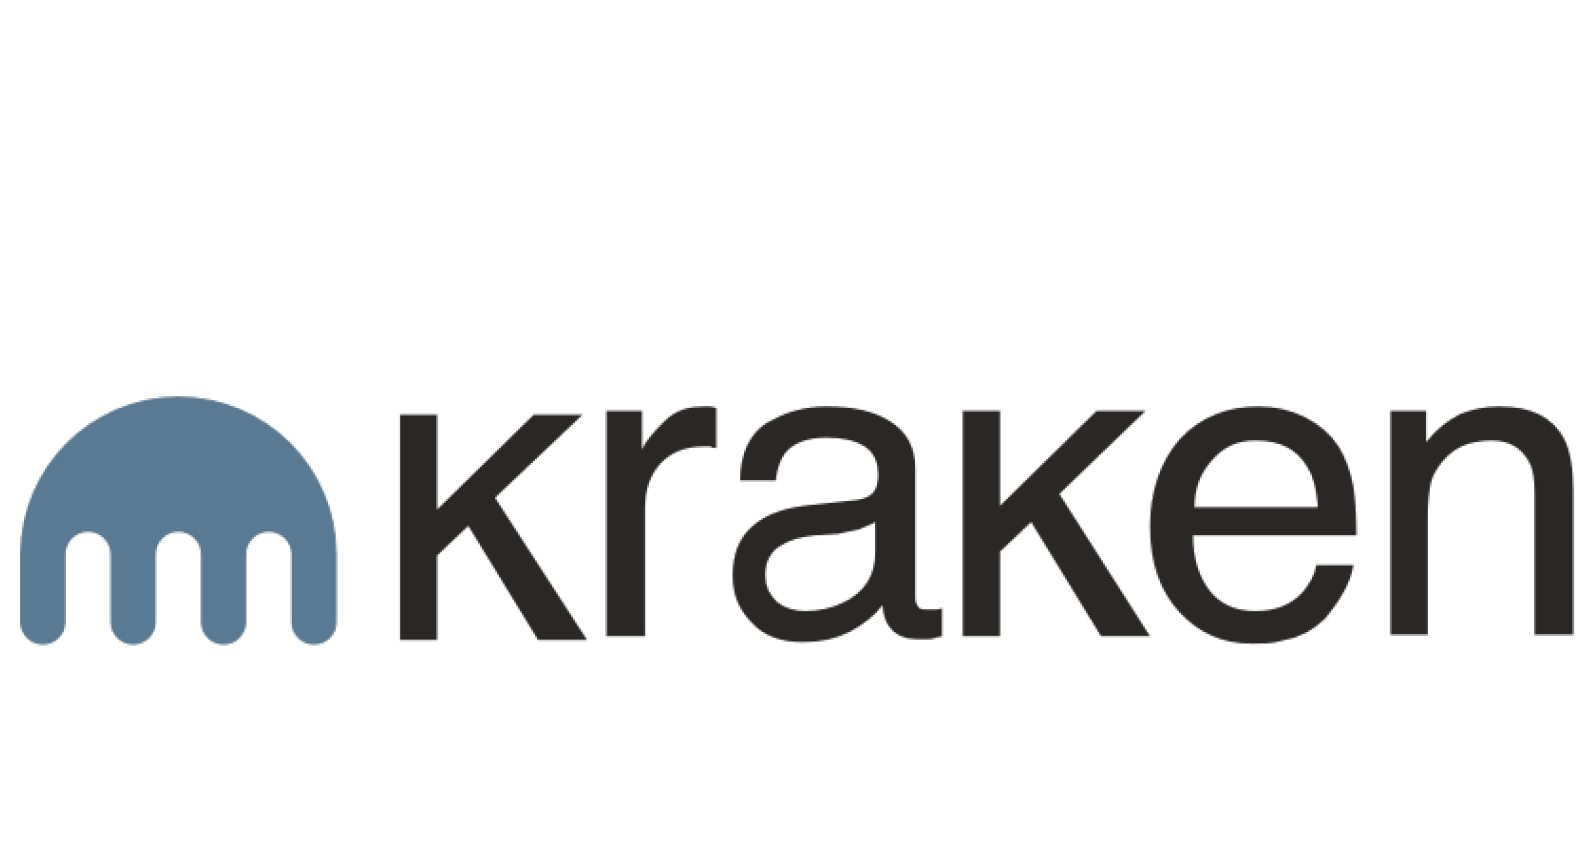 kraken cryptocurrency market